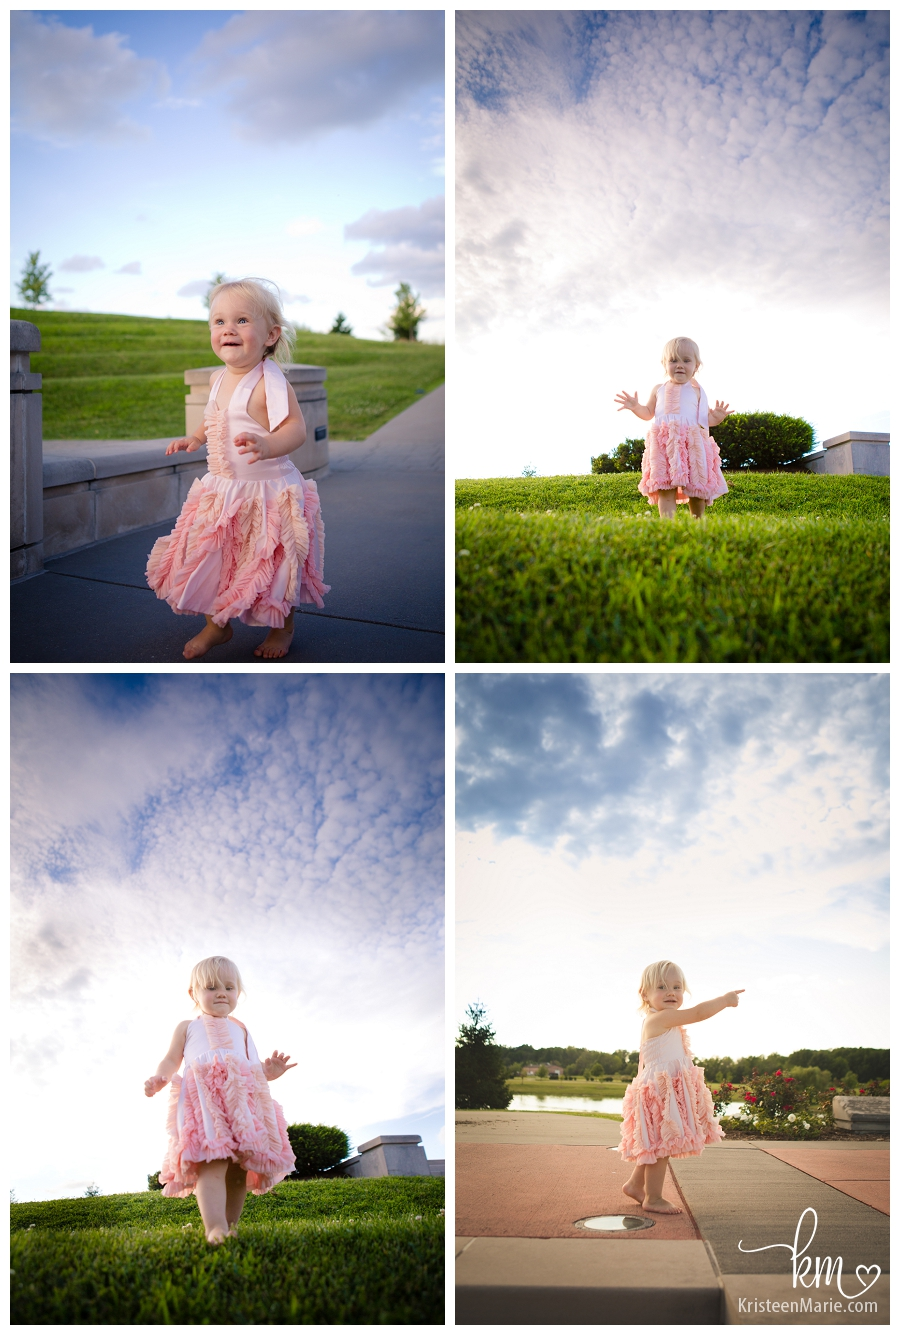 Payton in the clouds